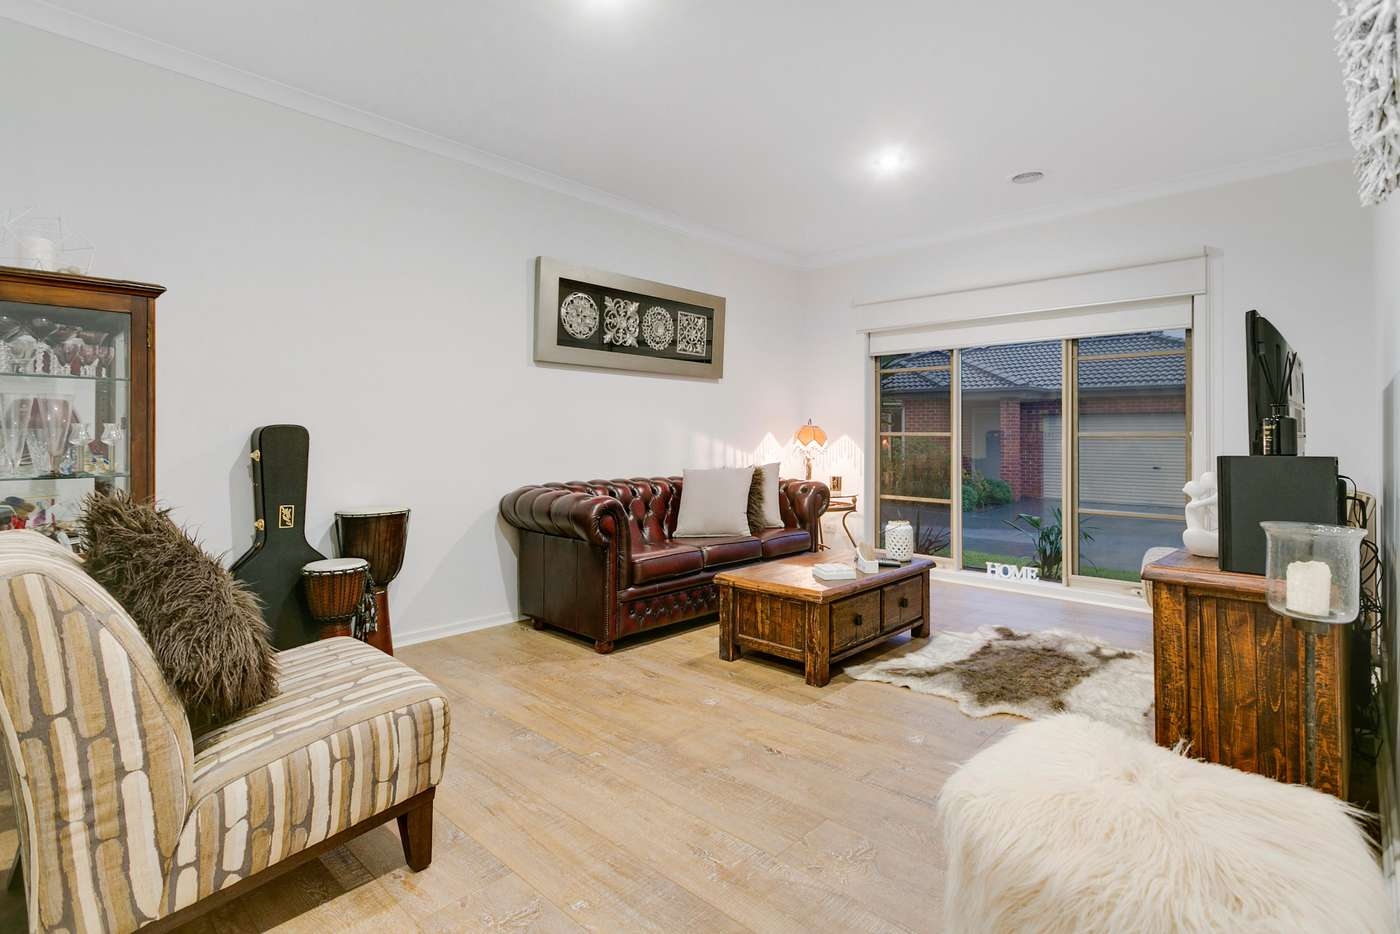 Fifth view of Homely house listing, 10/20 Robin Drive, Carrum Downs VIC 3201